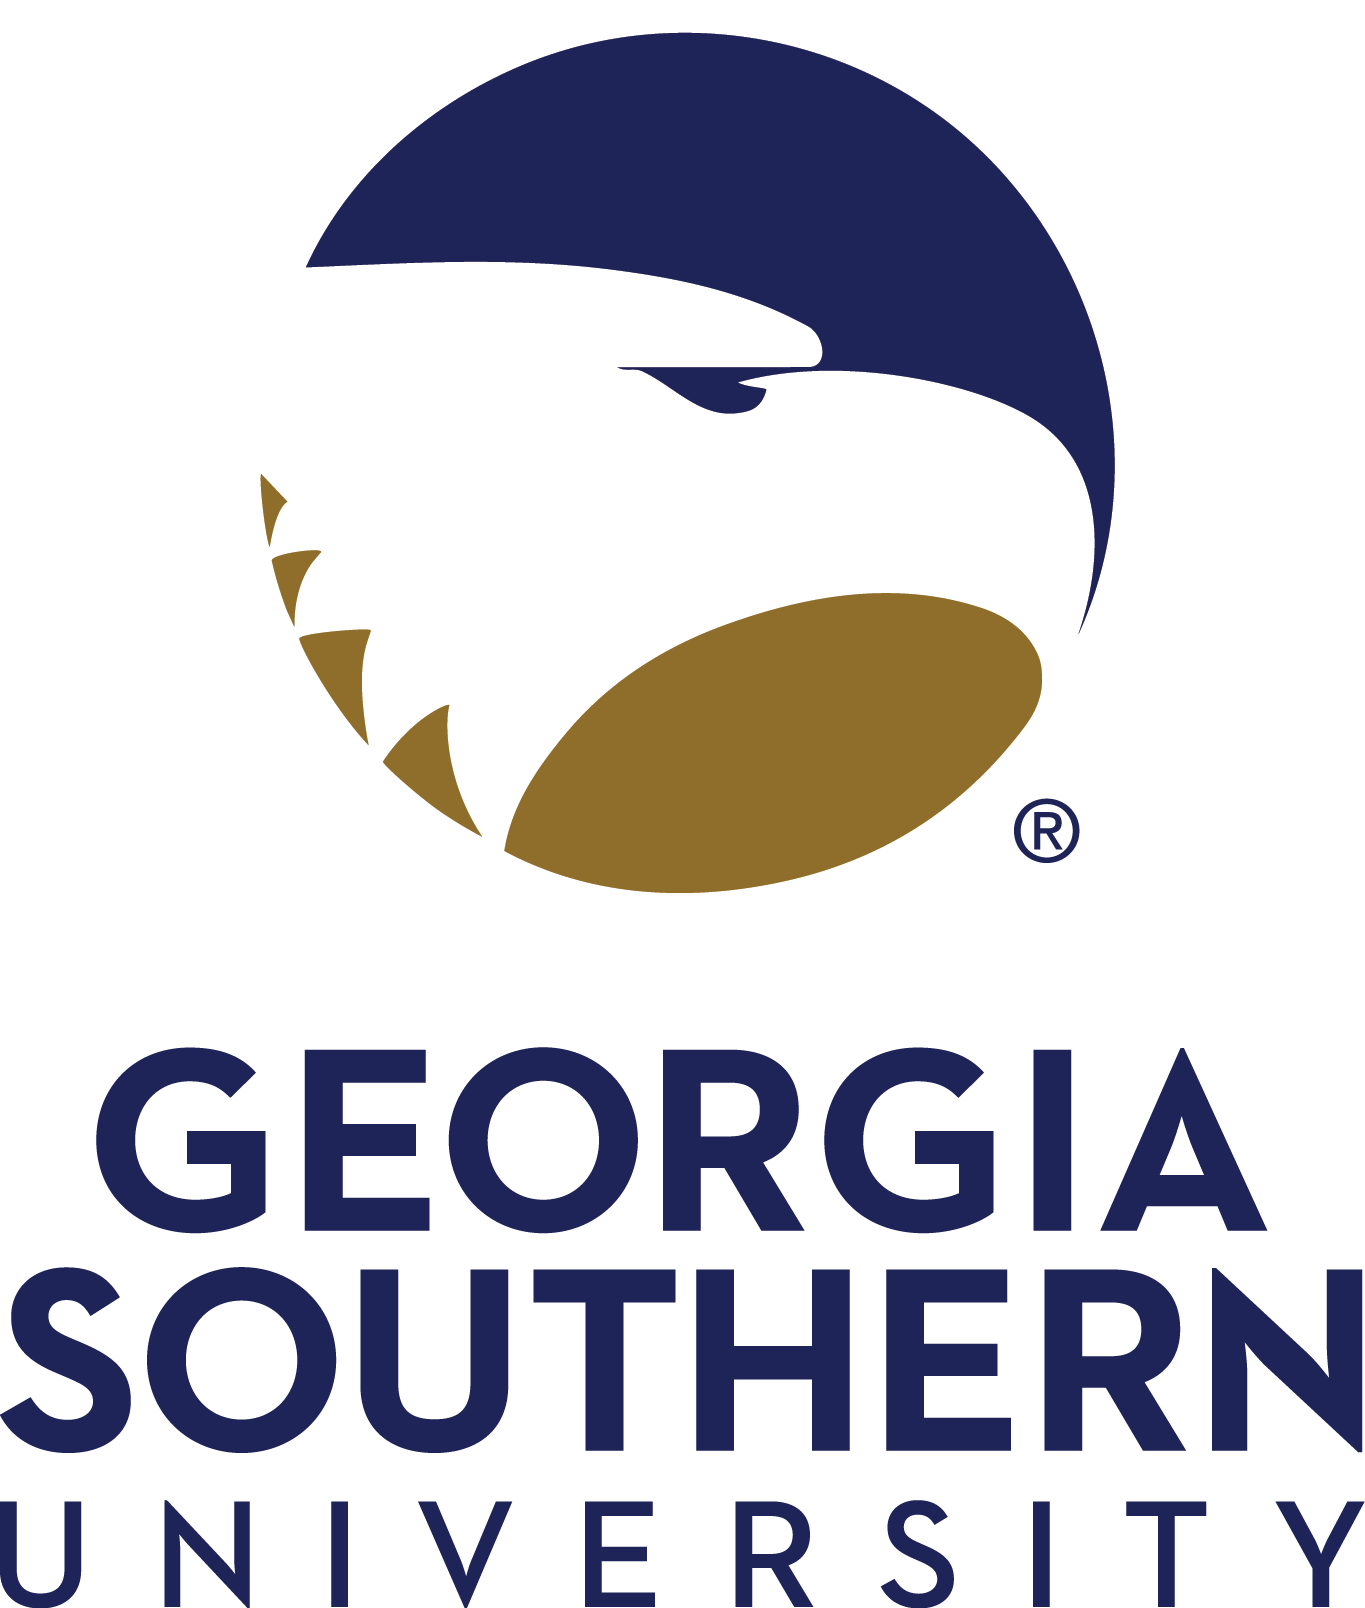 Some residence halls at Georgia Southern to remain closed